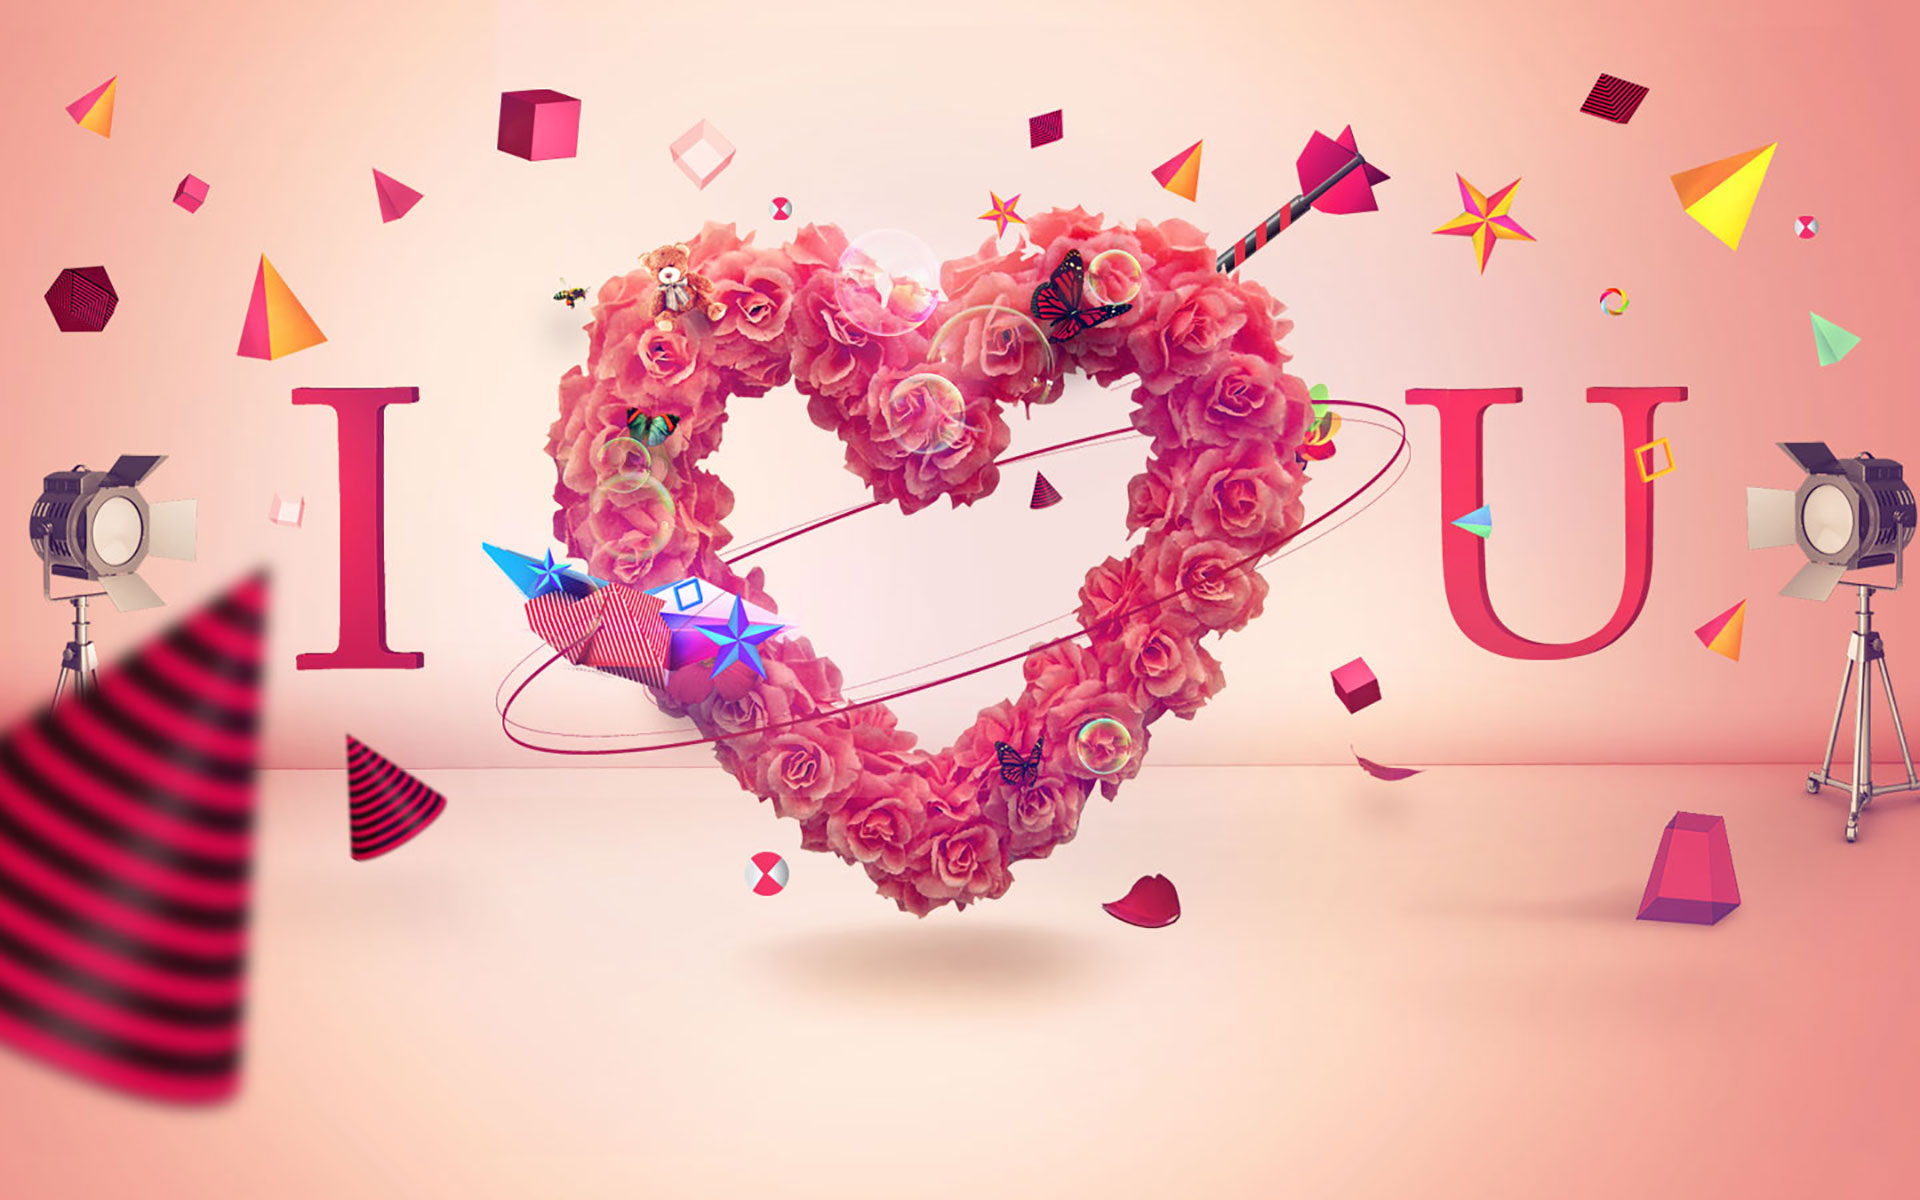 Love Wallpaper collection Zip : 25+ Free HD I Love You Wallpapers cute I Love You Images